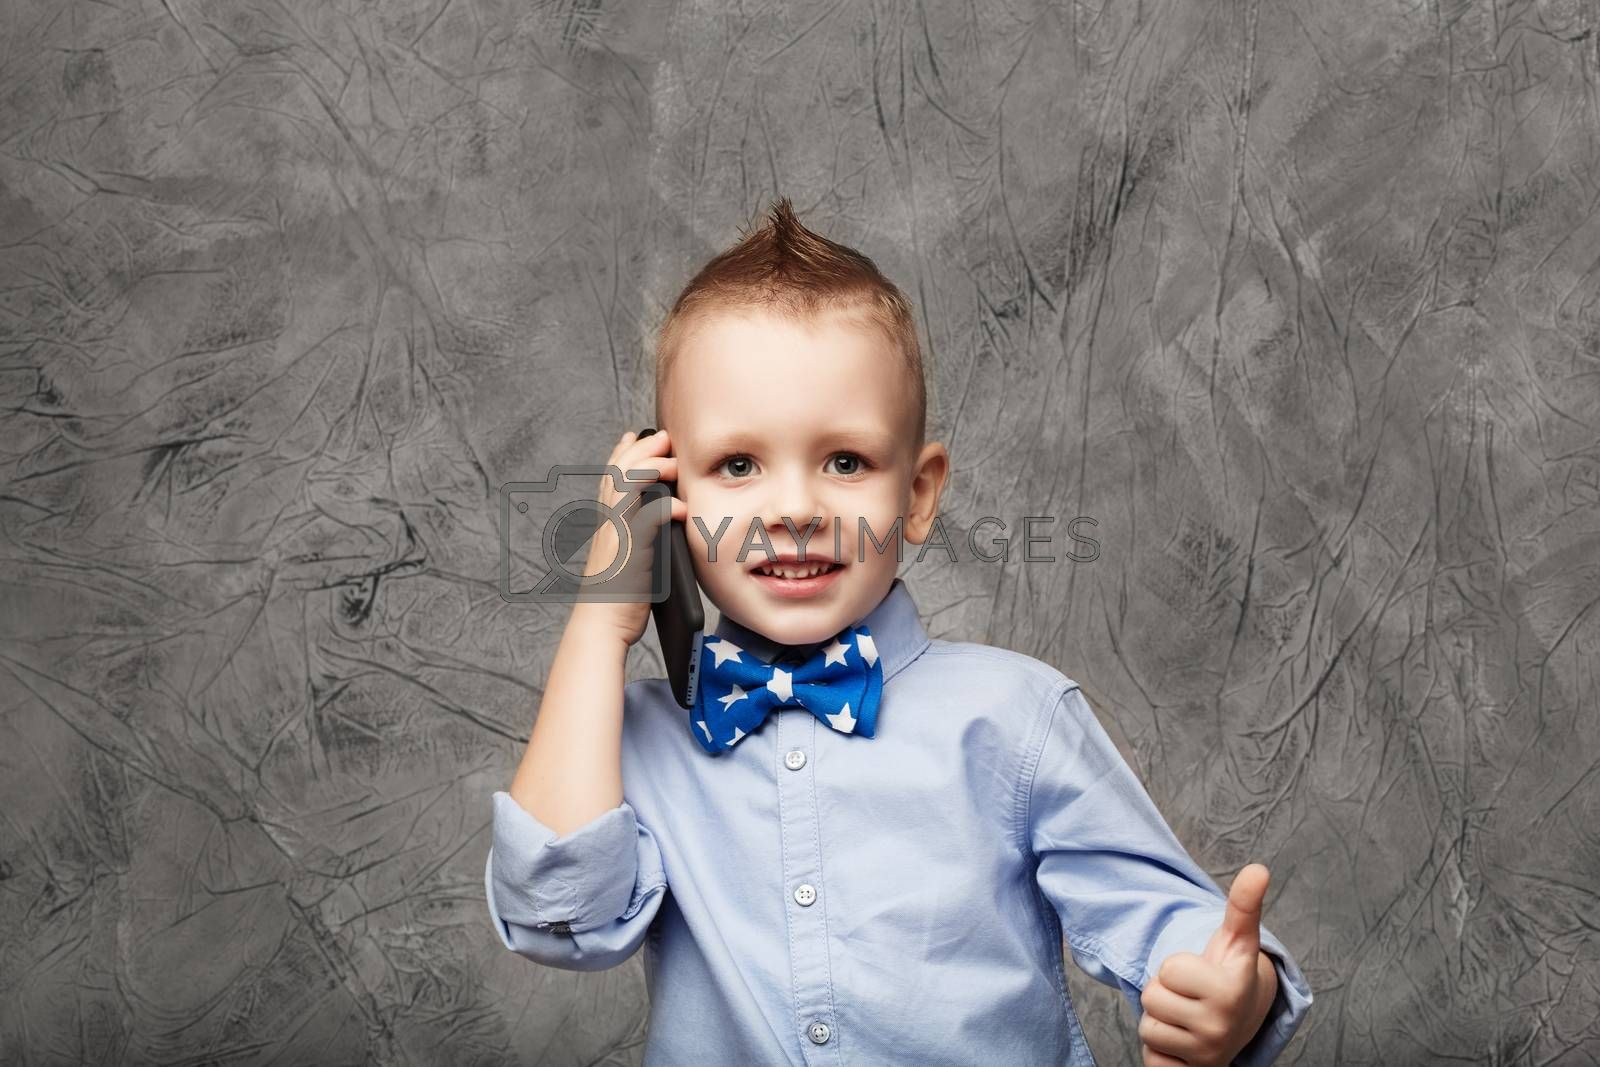 Portrait of a cute little boy in blue shirt and bow tie with mobile phone against gray textural background in studio. Kid shows thumb. Little boy American businessman.